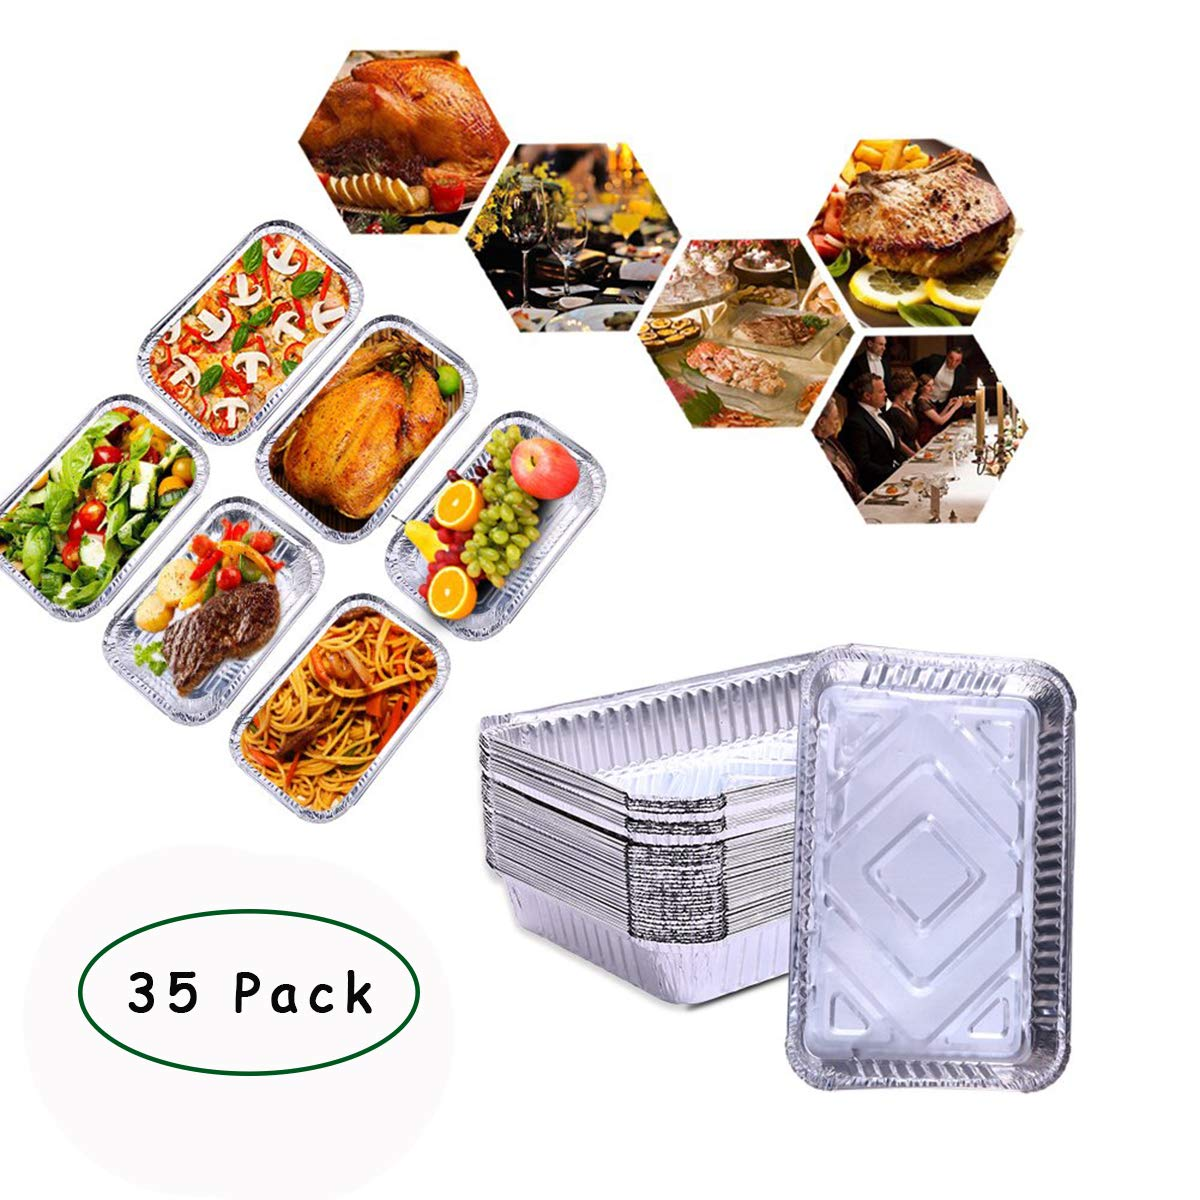 Bonaweite Disposable Aluminum Foil Steam Table Loaf Pans, Half Size Deep, Chafing Rectangular Tin Grill Accessories for Baking Roasting Broiling and Cooking Cakes Loaves Bread Lasagna(35 Pack-2200ml)